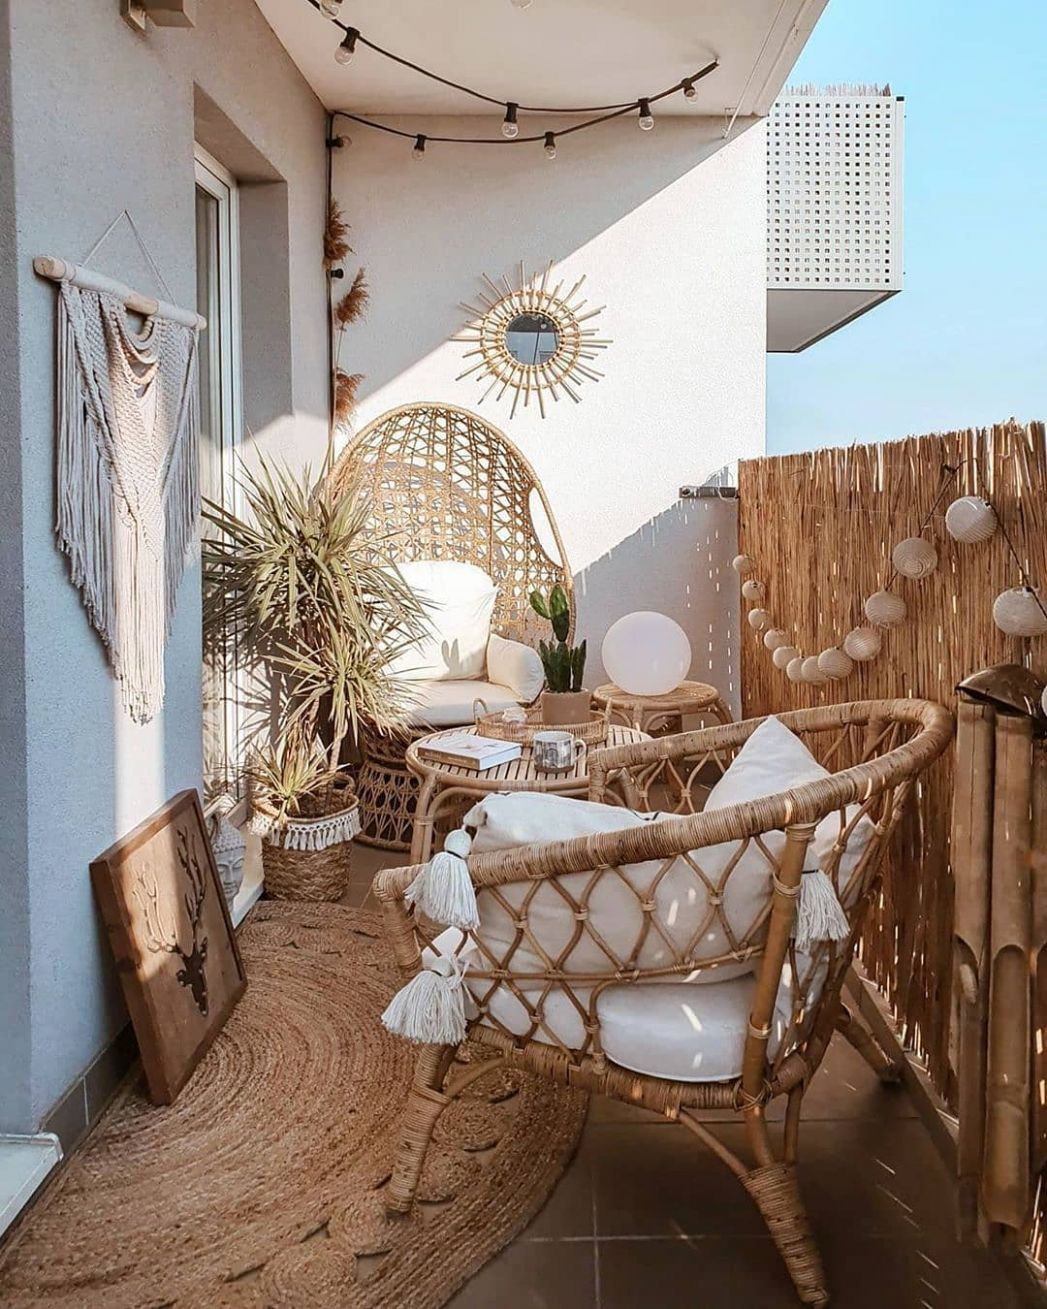 Small Balcony Ideas   How to Have A Modern Small Balcony   Decoholic - elegant balcony ideas